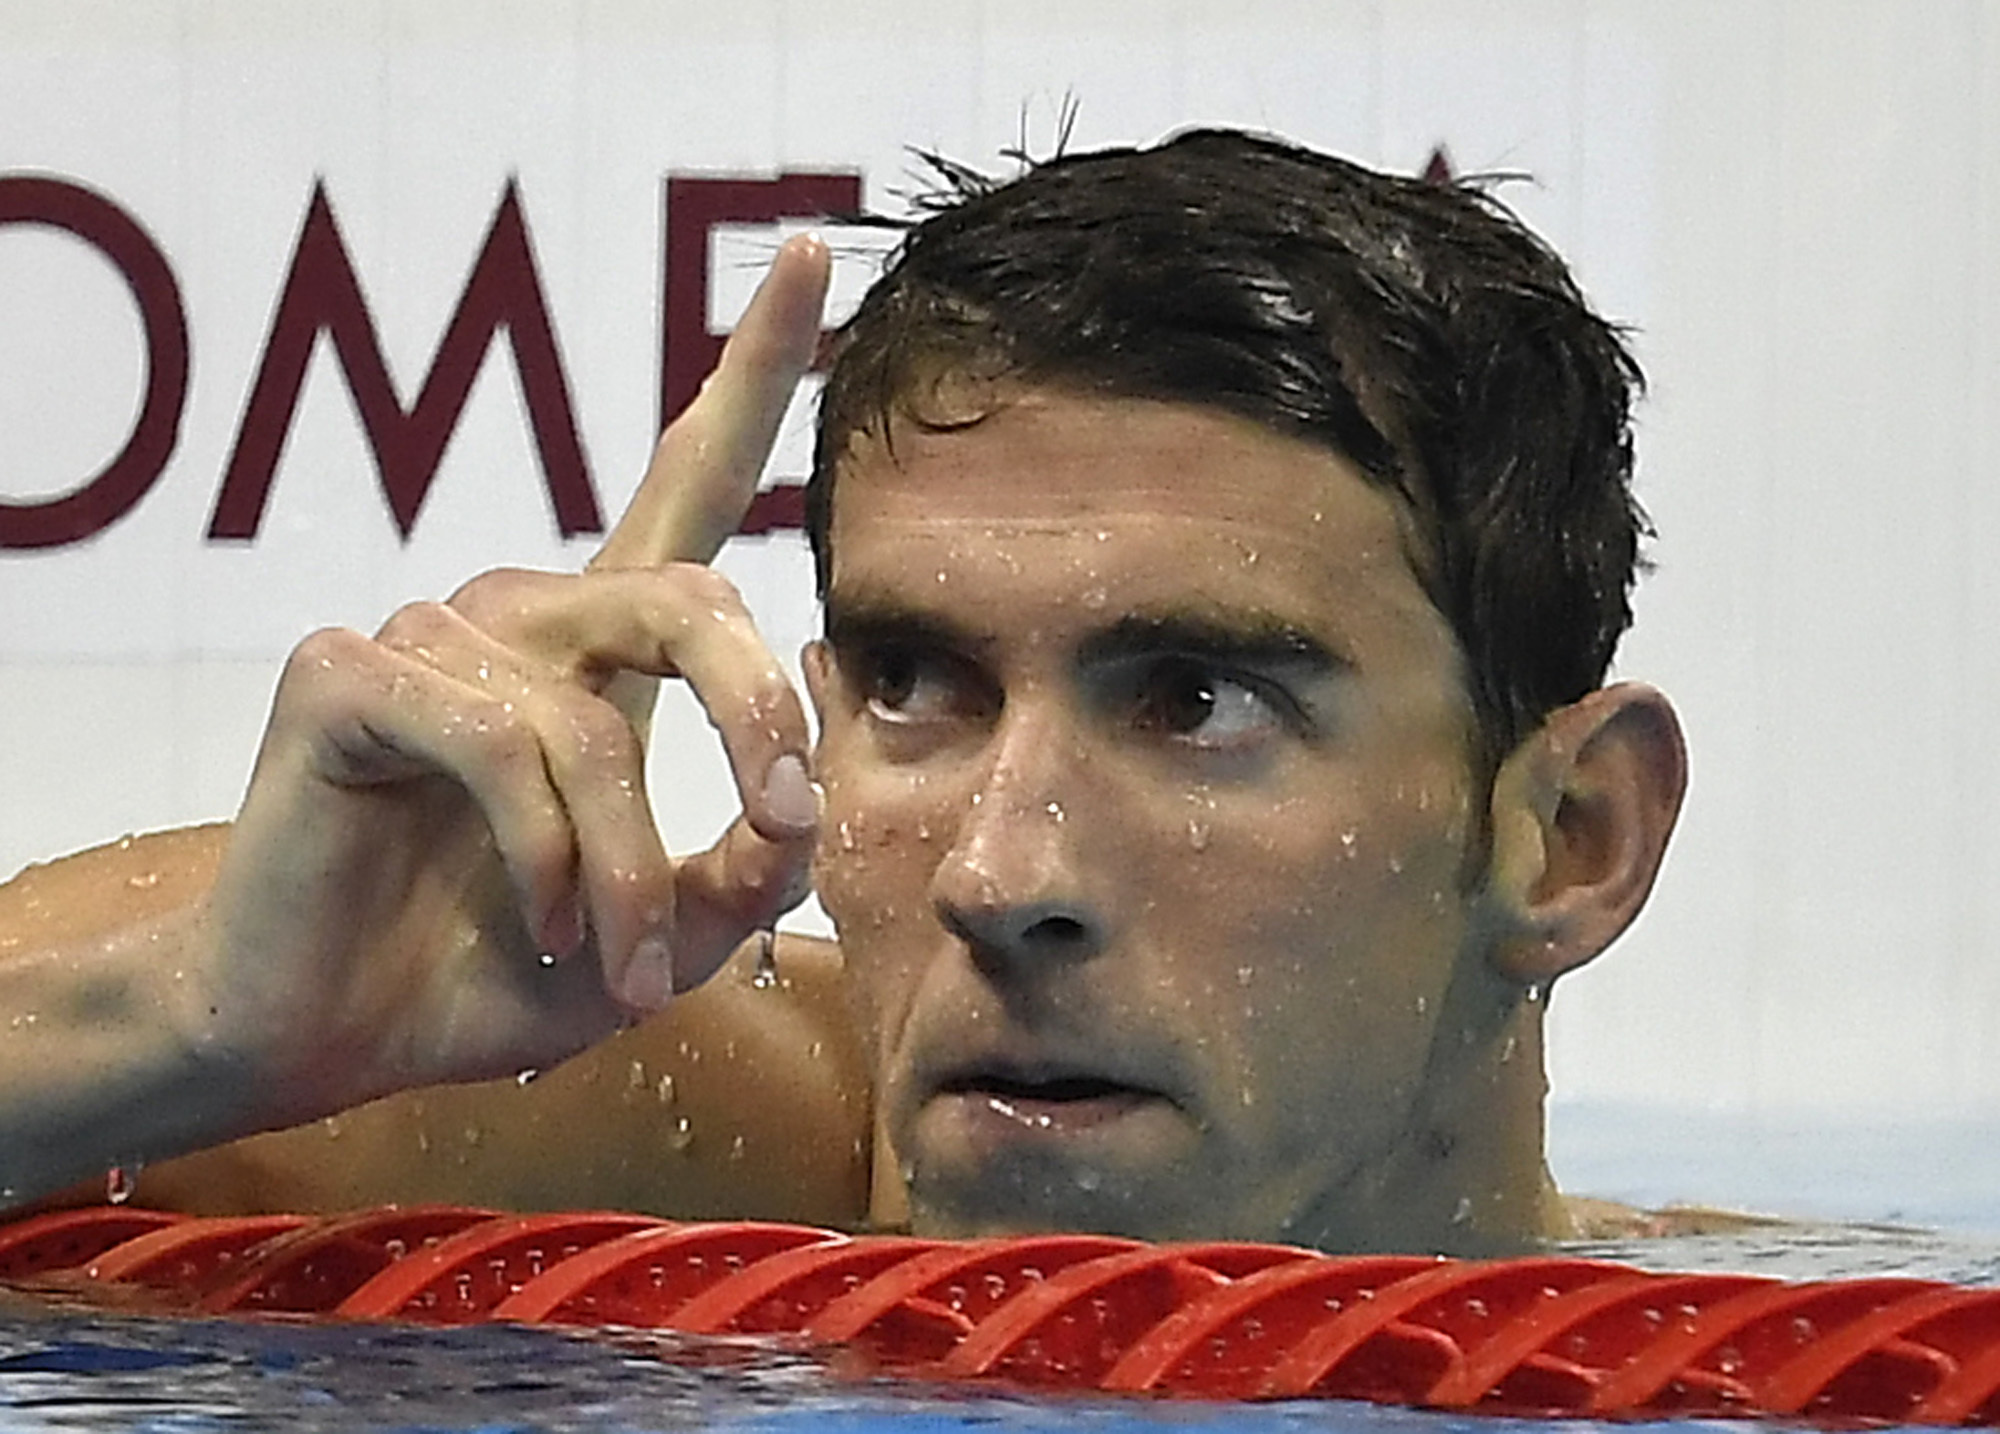 United States´ Michael Phelps celebrates after winning the gold medal in the men´s 200-meter individual medley final during the swimming competitions at the 2016 Summer Olympics, Thursday, Aug. 11, 2016, in Rio de Janeiro, Brazil. (AP Photo/Martin Meissner)